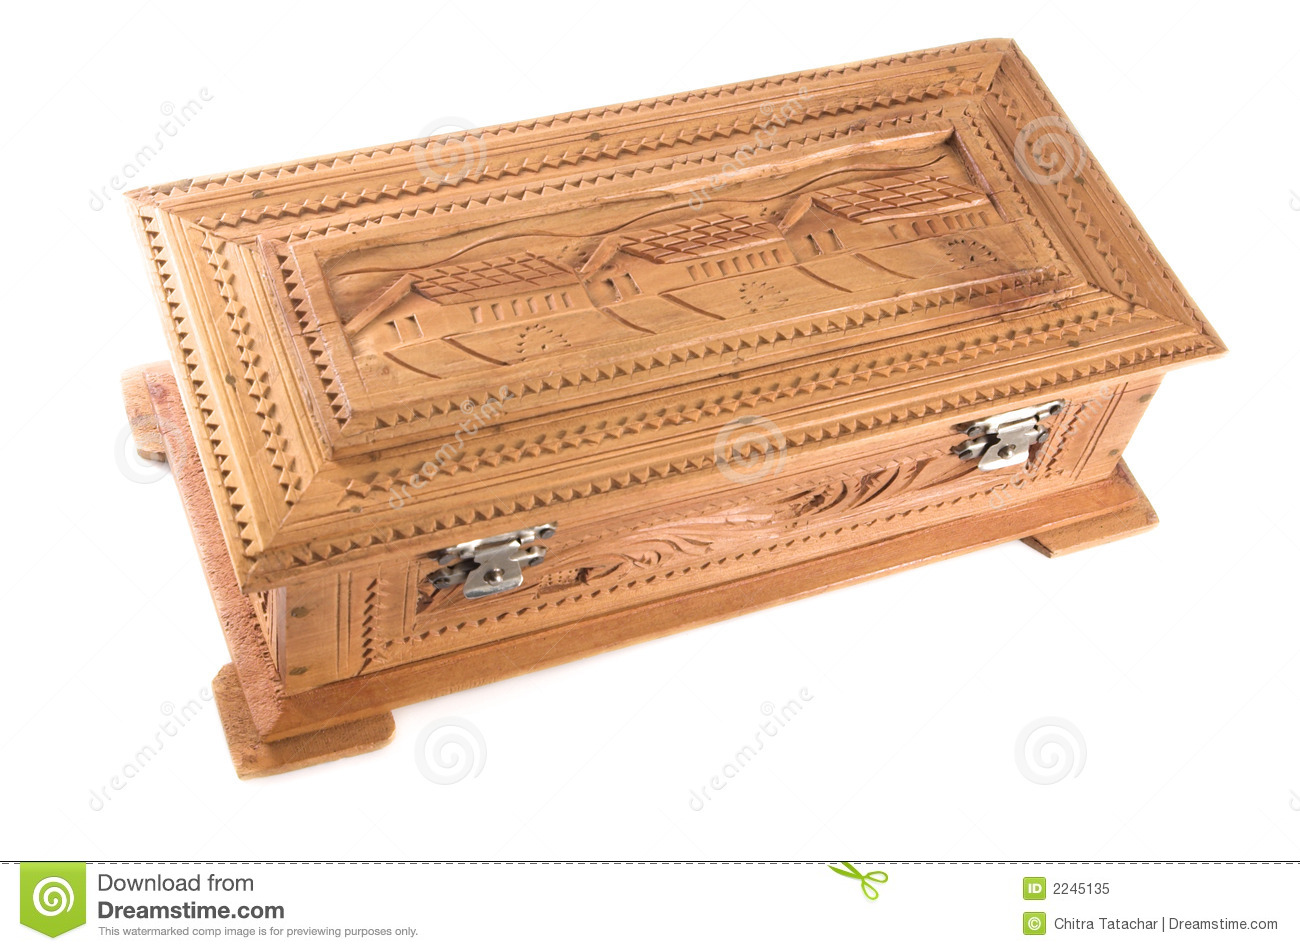 Sandal wood jewelry box royalty free stock photo image for Jewelry box made of wood